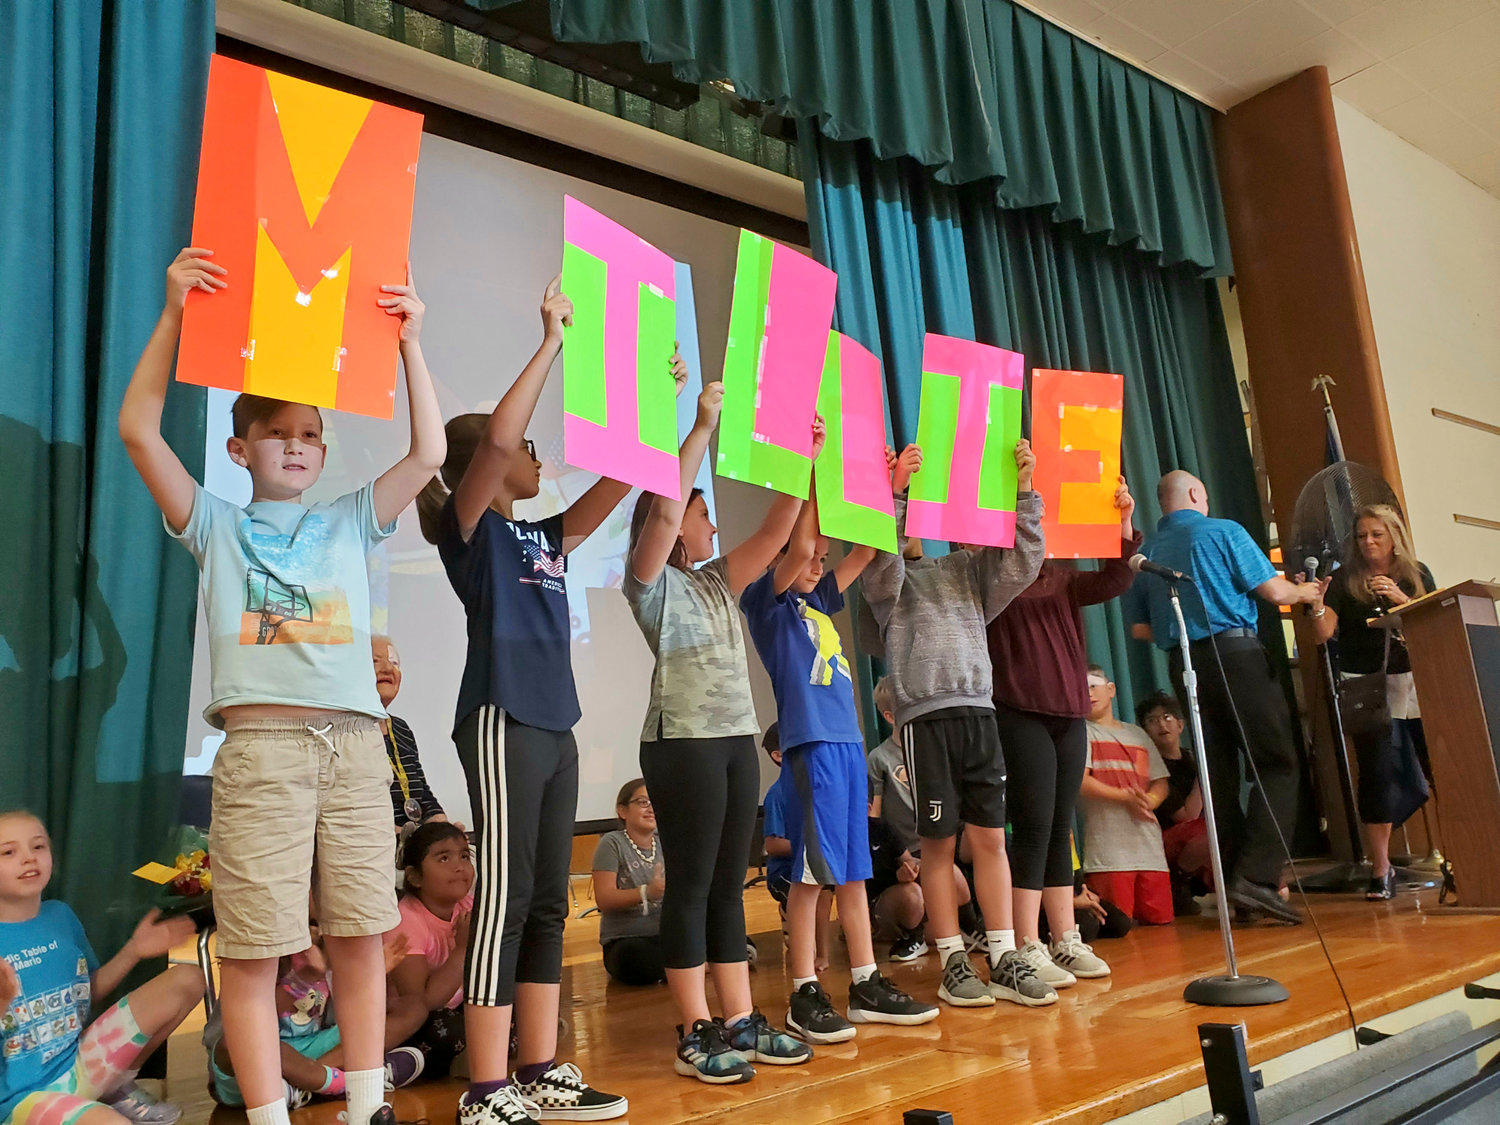 East Broadway Elementary students performed a poem based on the acronym 'MILLIE', Bowman's nickname.